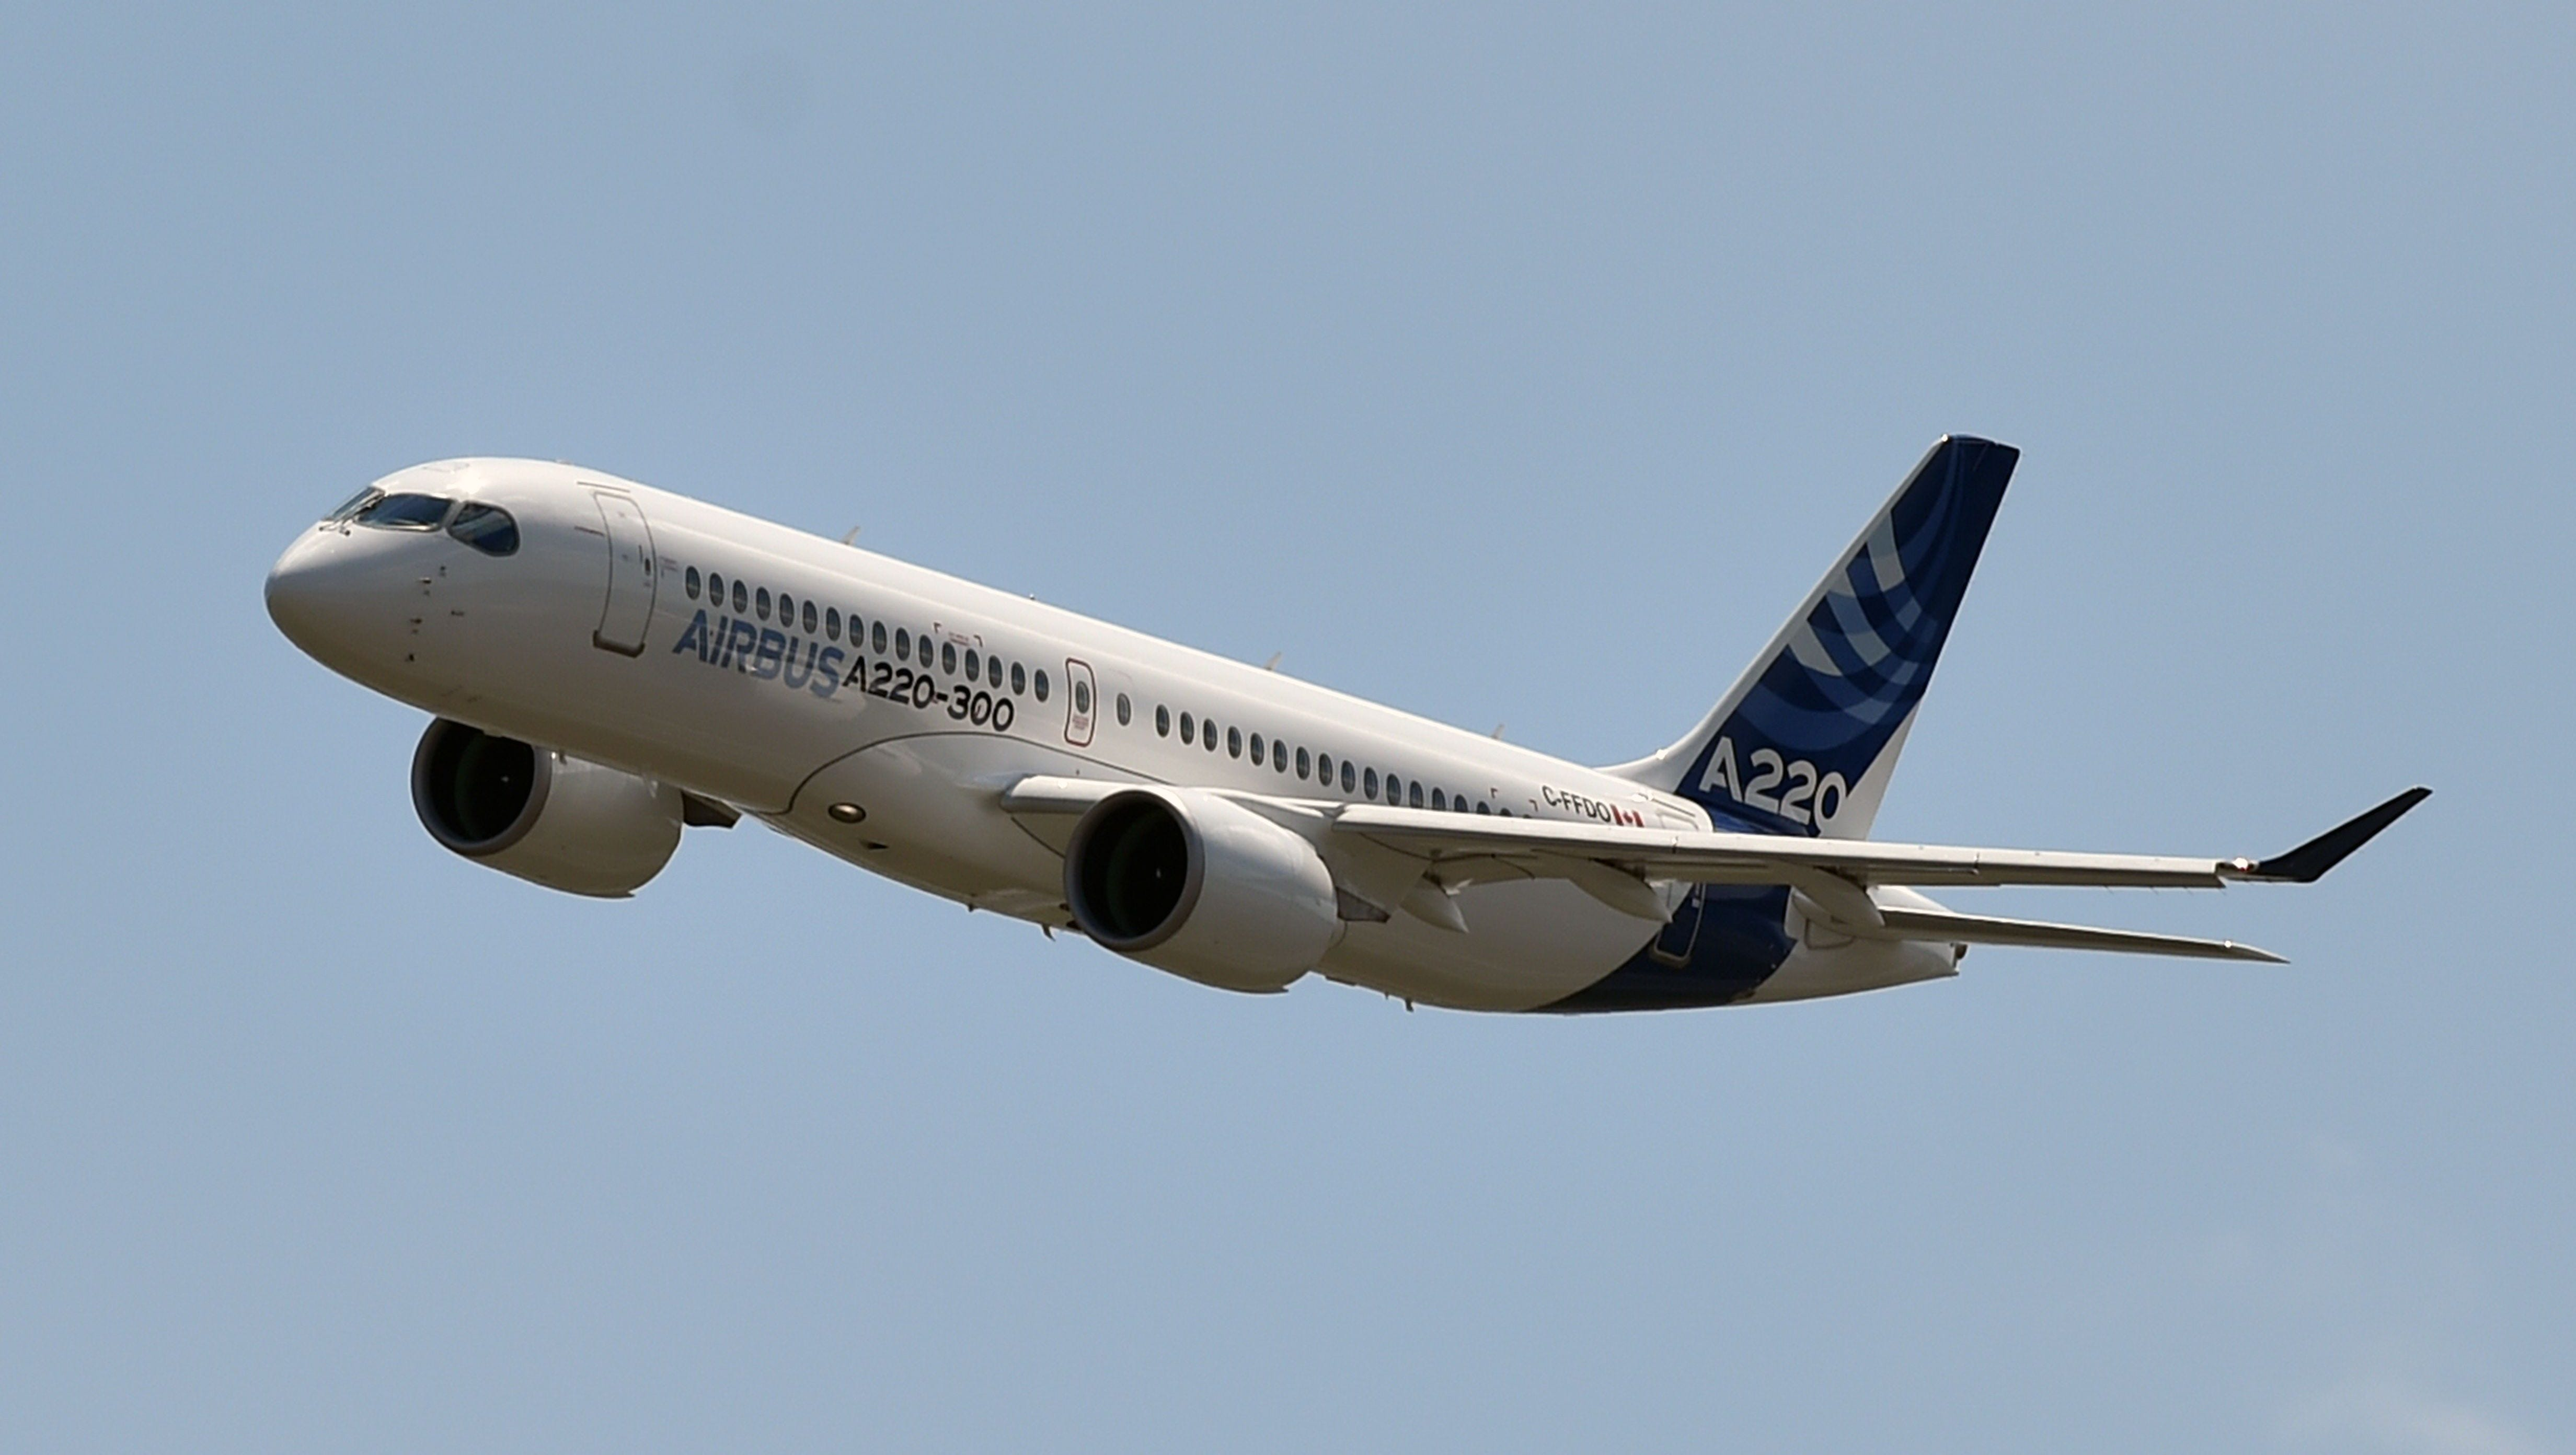 jetblue airbus a220s offer more seats but cost 29 less to operate jetblue airbus a220s offer more seats